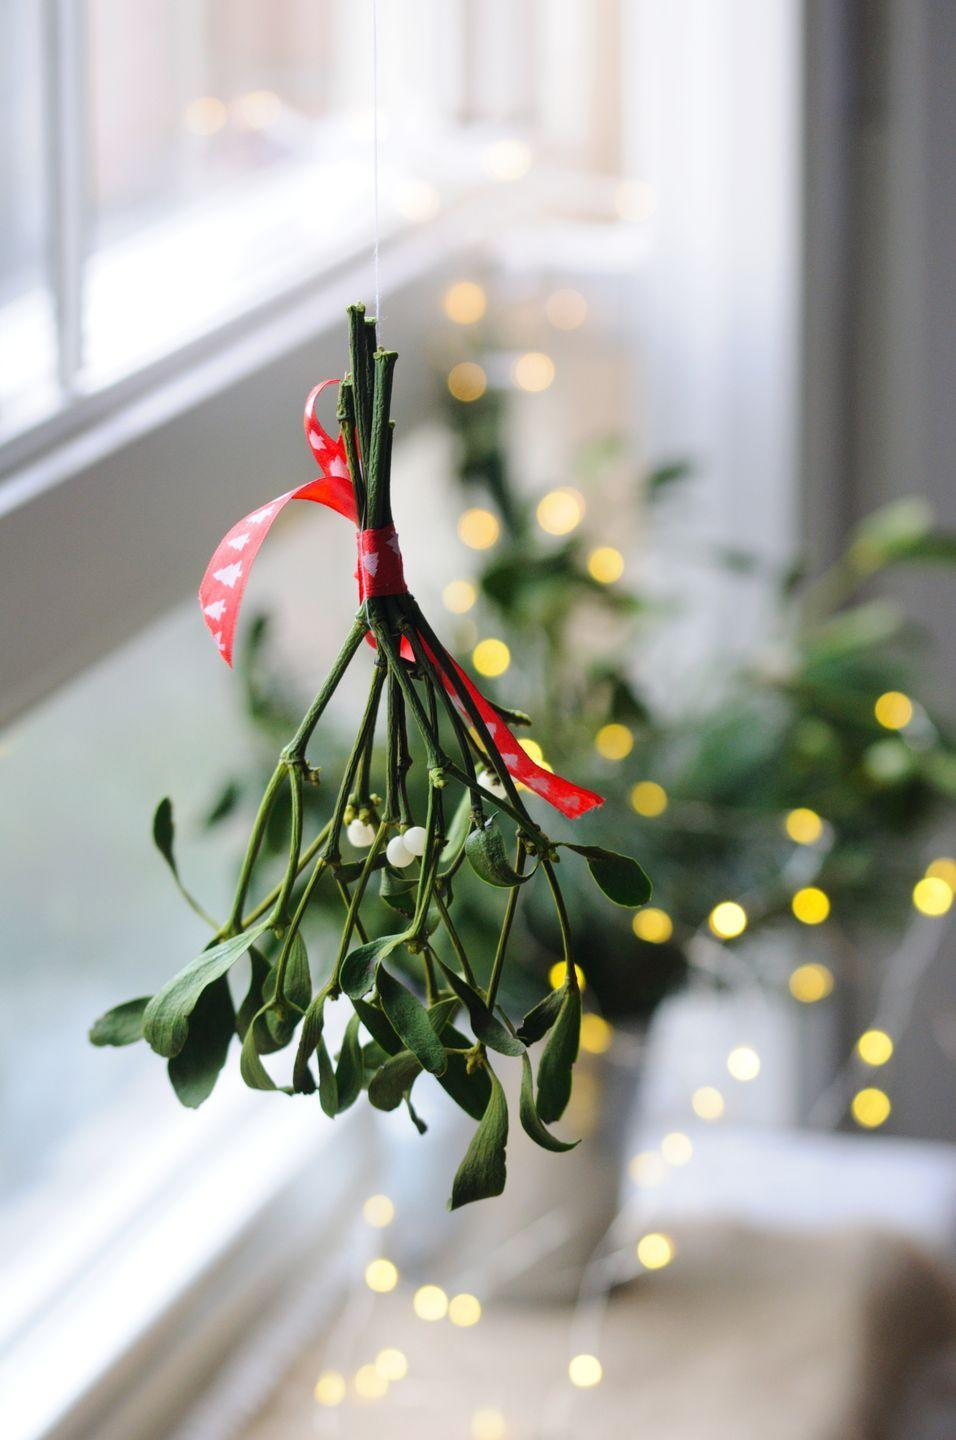 """<p>If you're coupled up, hang a ball of mistletoe in your entryway—it'll serve as a great excuse to kiss your partner every time they walk through the door. (As if you needed one!) </p><p><em>Learn how to make a Christmas kissing ball at <a href=""""https://apumpkinandaprincess.com/christmas-kissing-ball/"""" rel=""""nofollow noopener"""" target=""""_blank"""" data-ylk=""""slk:A Pumpkin and a Princess."""" class=""""link rapid-noclick-resp"""">A Pumpkin and a Princess.</a></em></p>"""